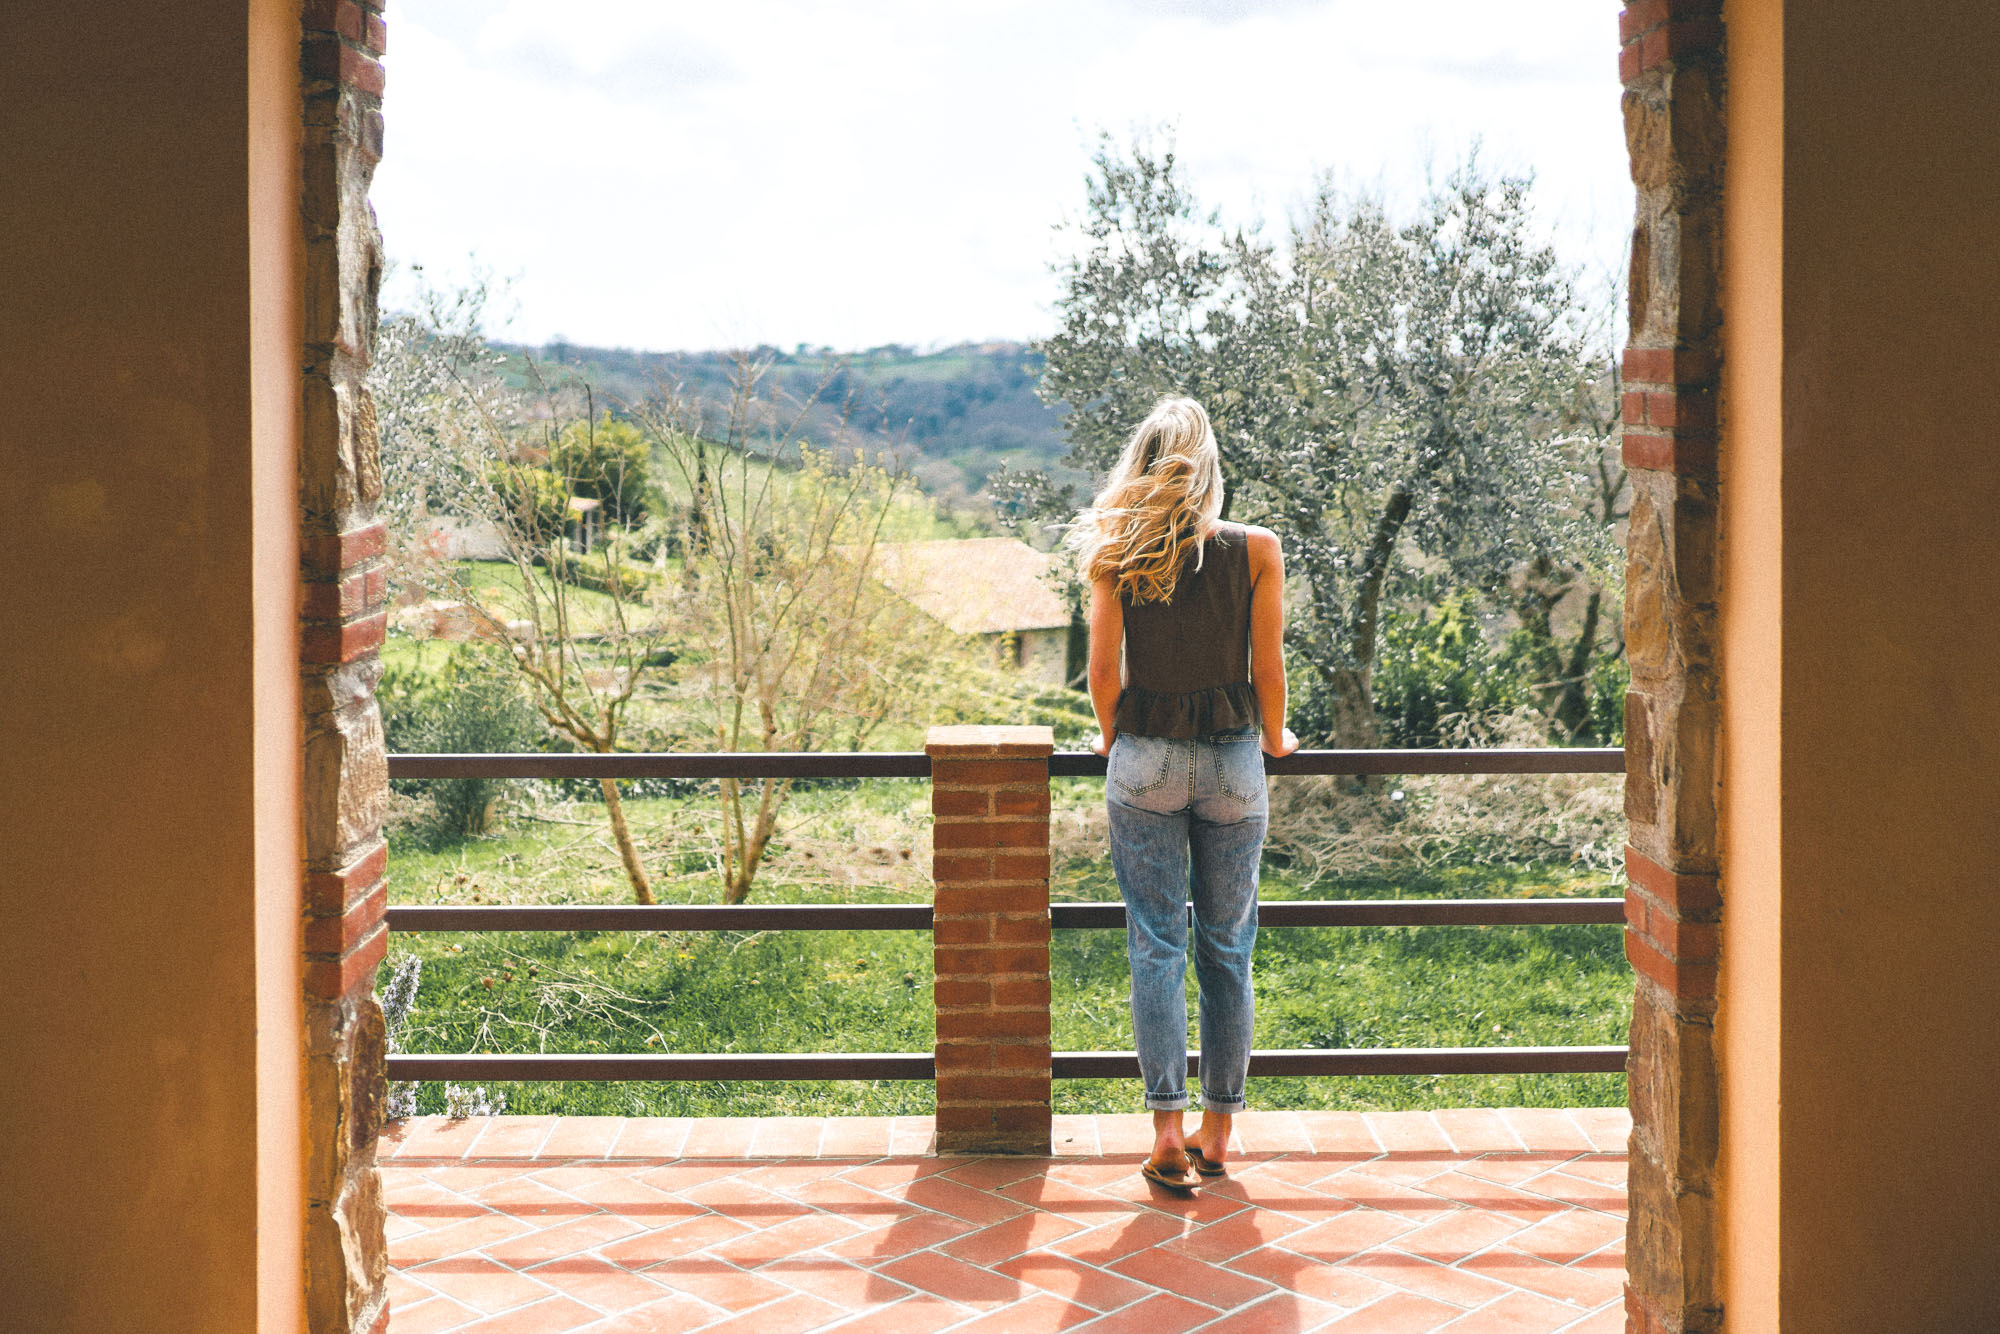 Balcony views at our tuscan villa Borgo Case Bardi in southern Tuscany, Italy